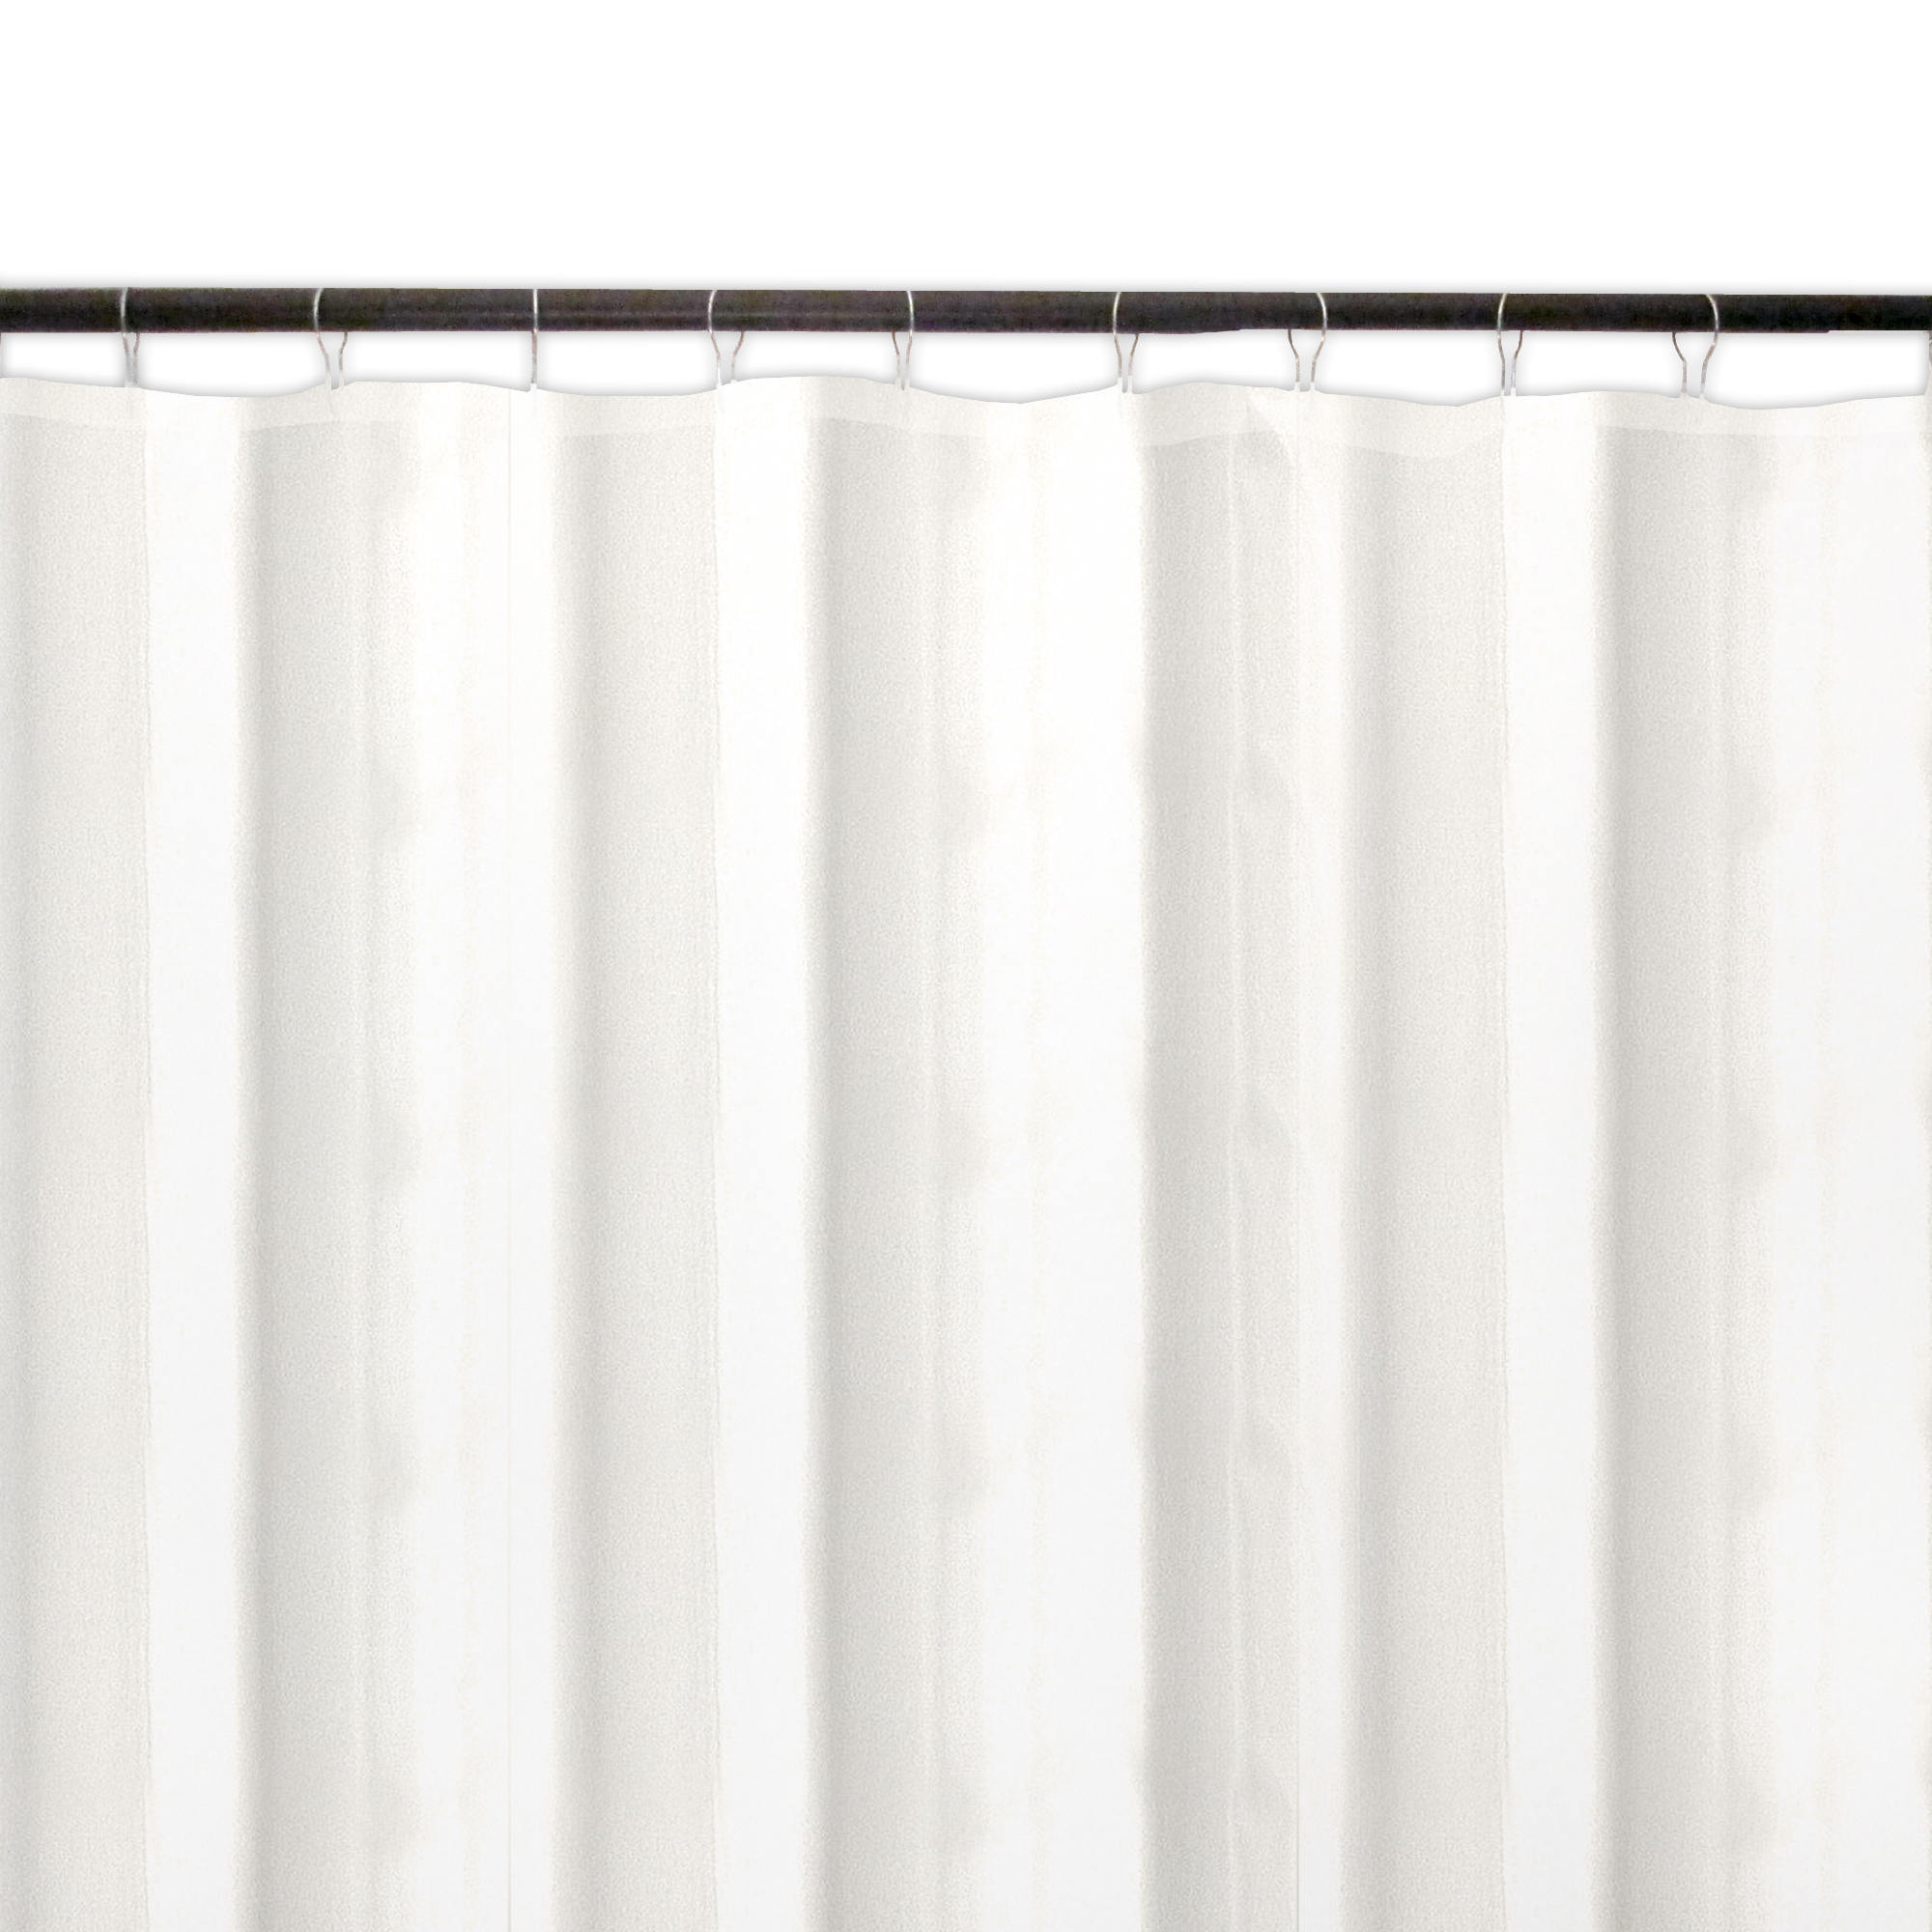 Veratex liners shower curtain liner reviews shoppypal for Bathroom liner